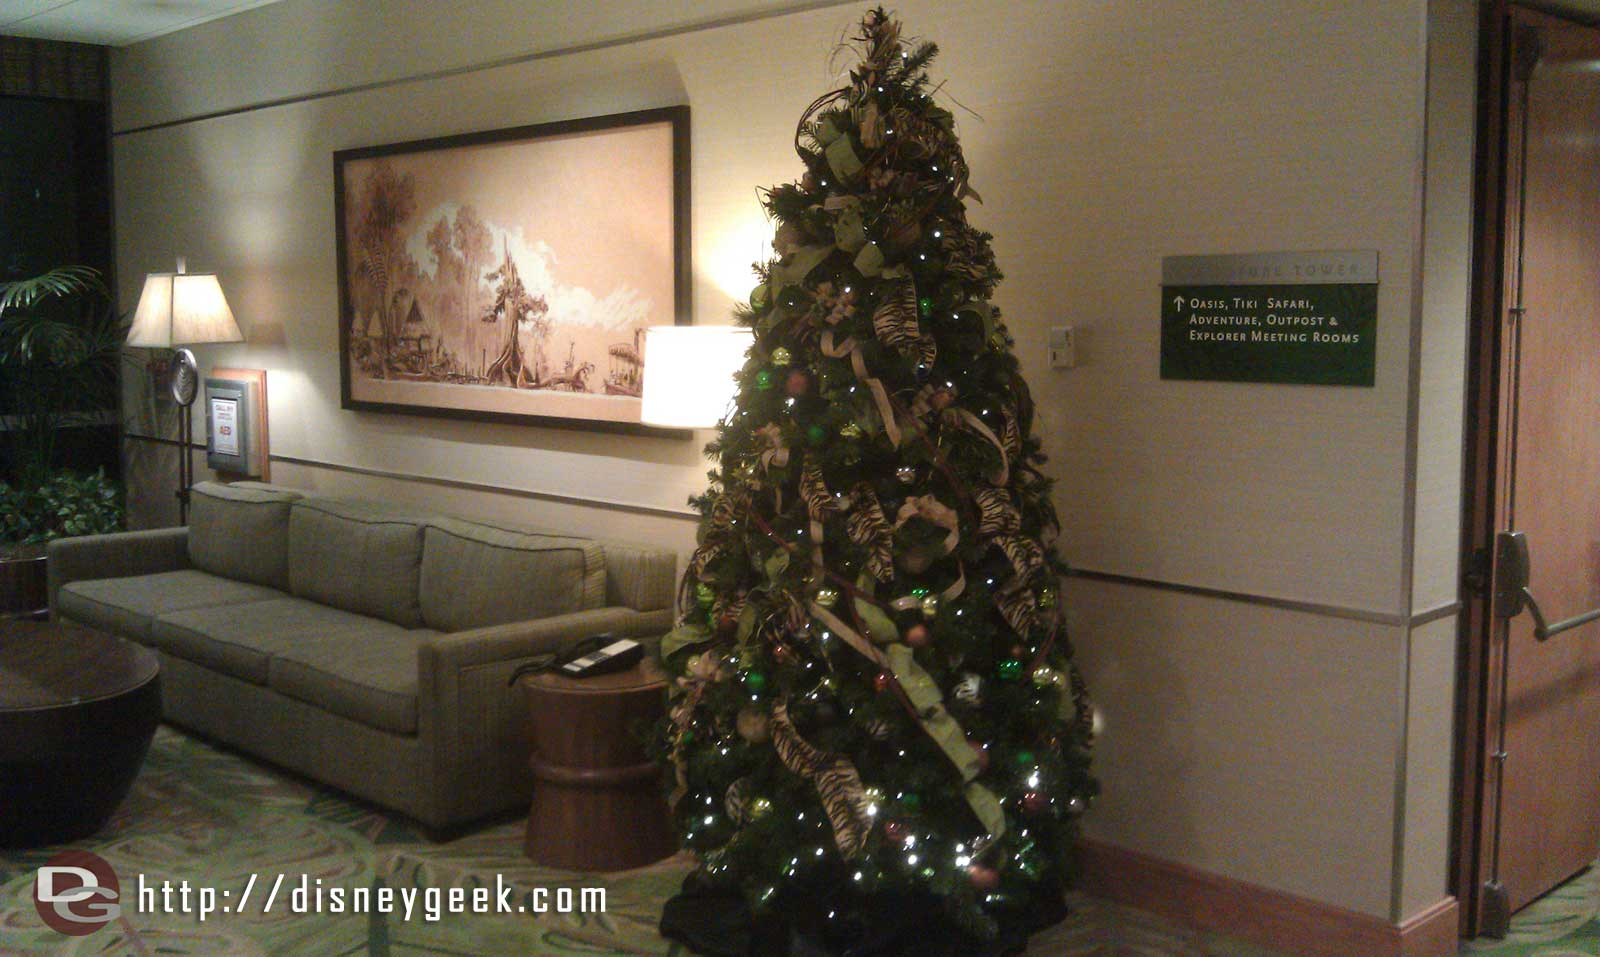 To round out my lobby tour, the small tree in the Adventure Tower lobby.